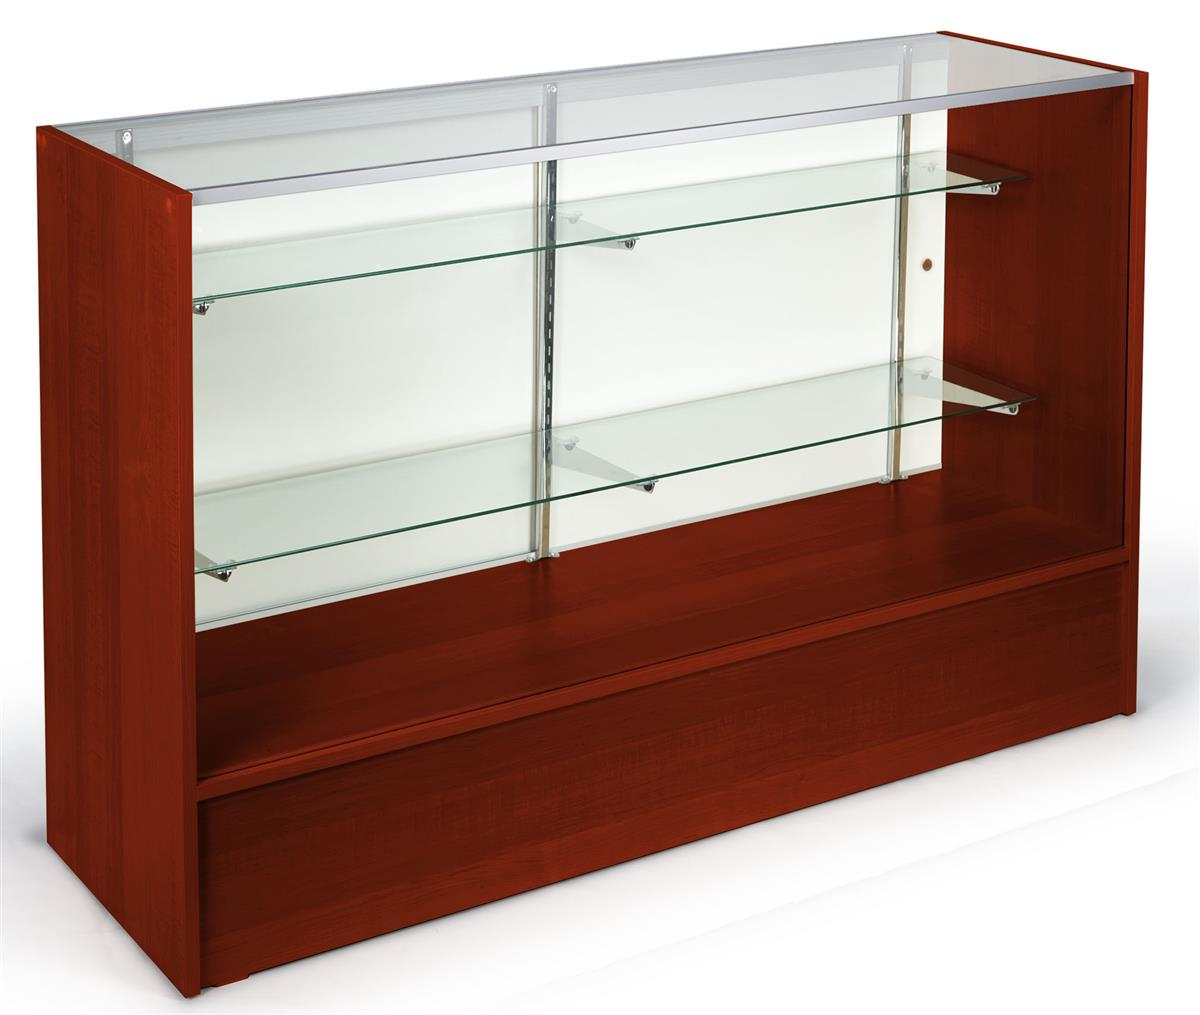 Display Cases Retail Displays With Cherry Finish